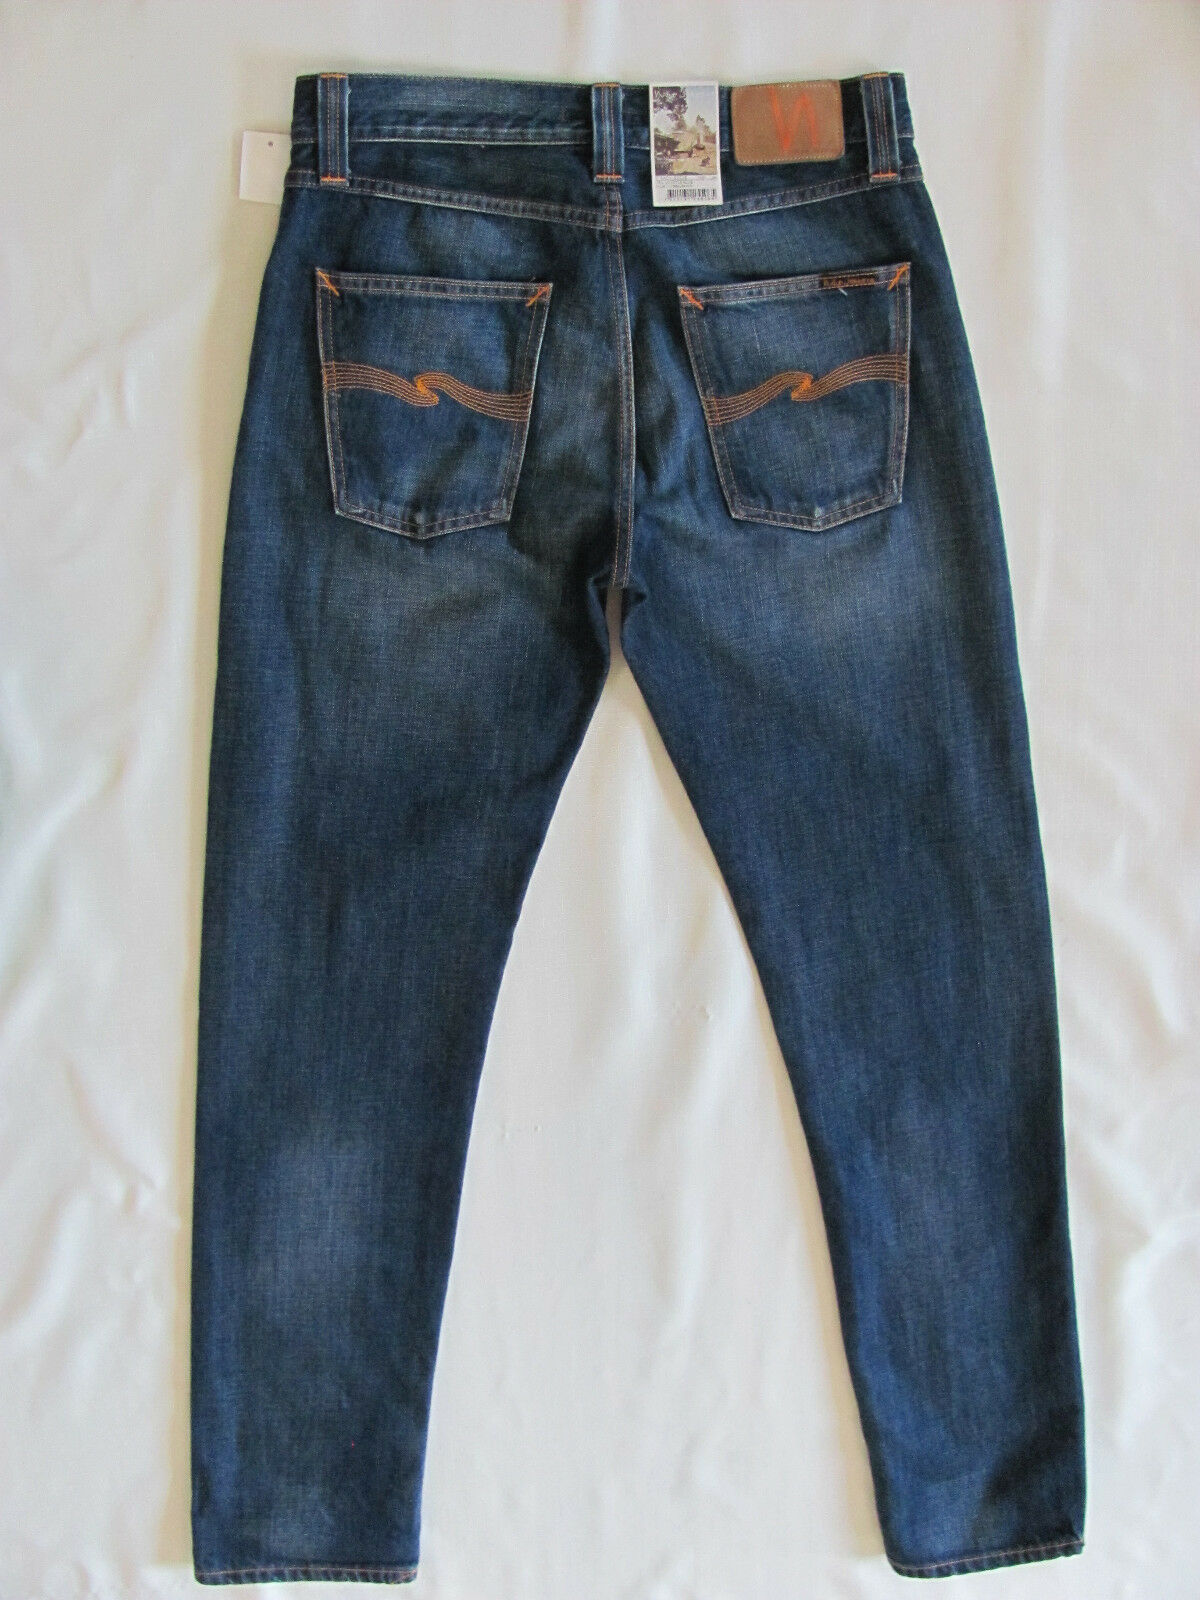 Nudie Jeans Steady Eddie Organic Cotton-Whistle bluee  NJ3894 -Size 31 L34